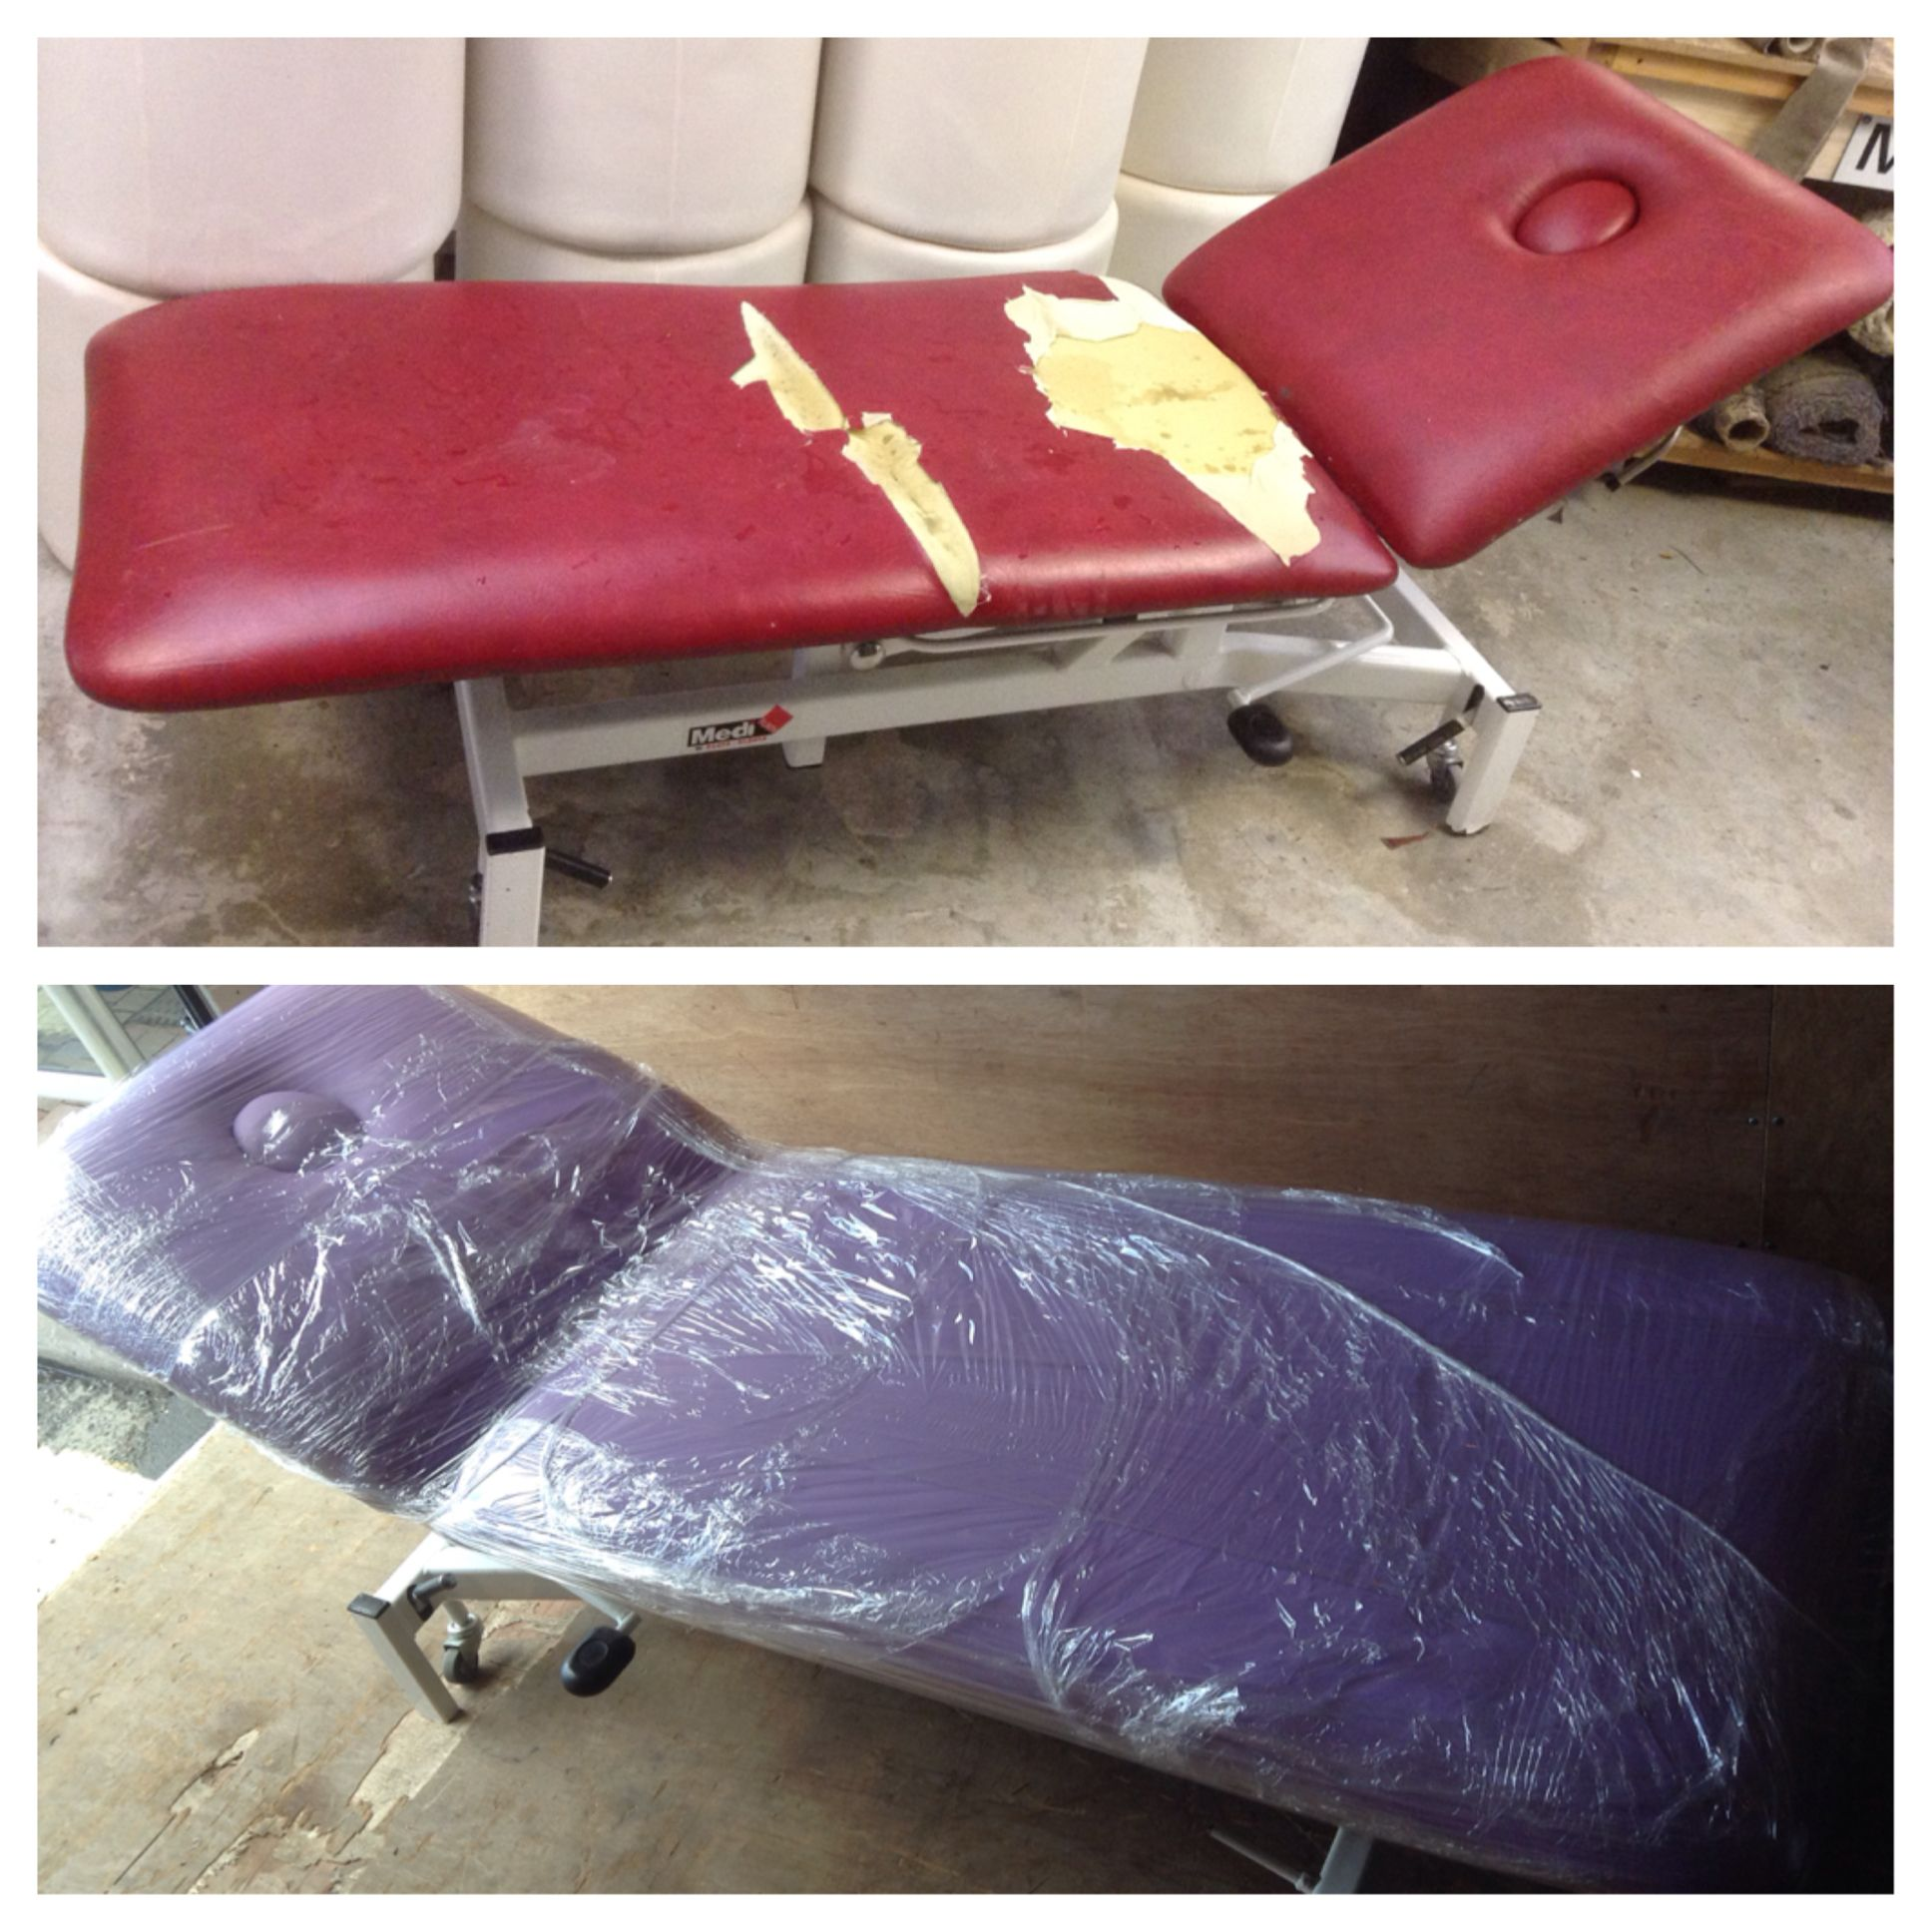 Slightly different to the furniture we tend to upholster at South West Upholstery, this is a repair we carried out on a massage bed. We know which one we'd rather lie on!